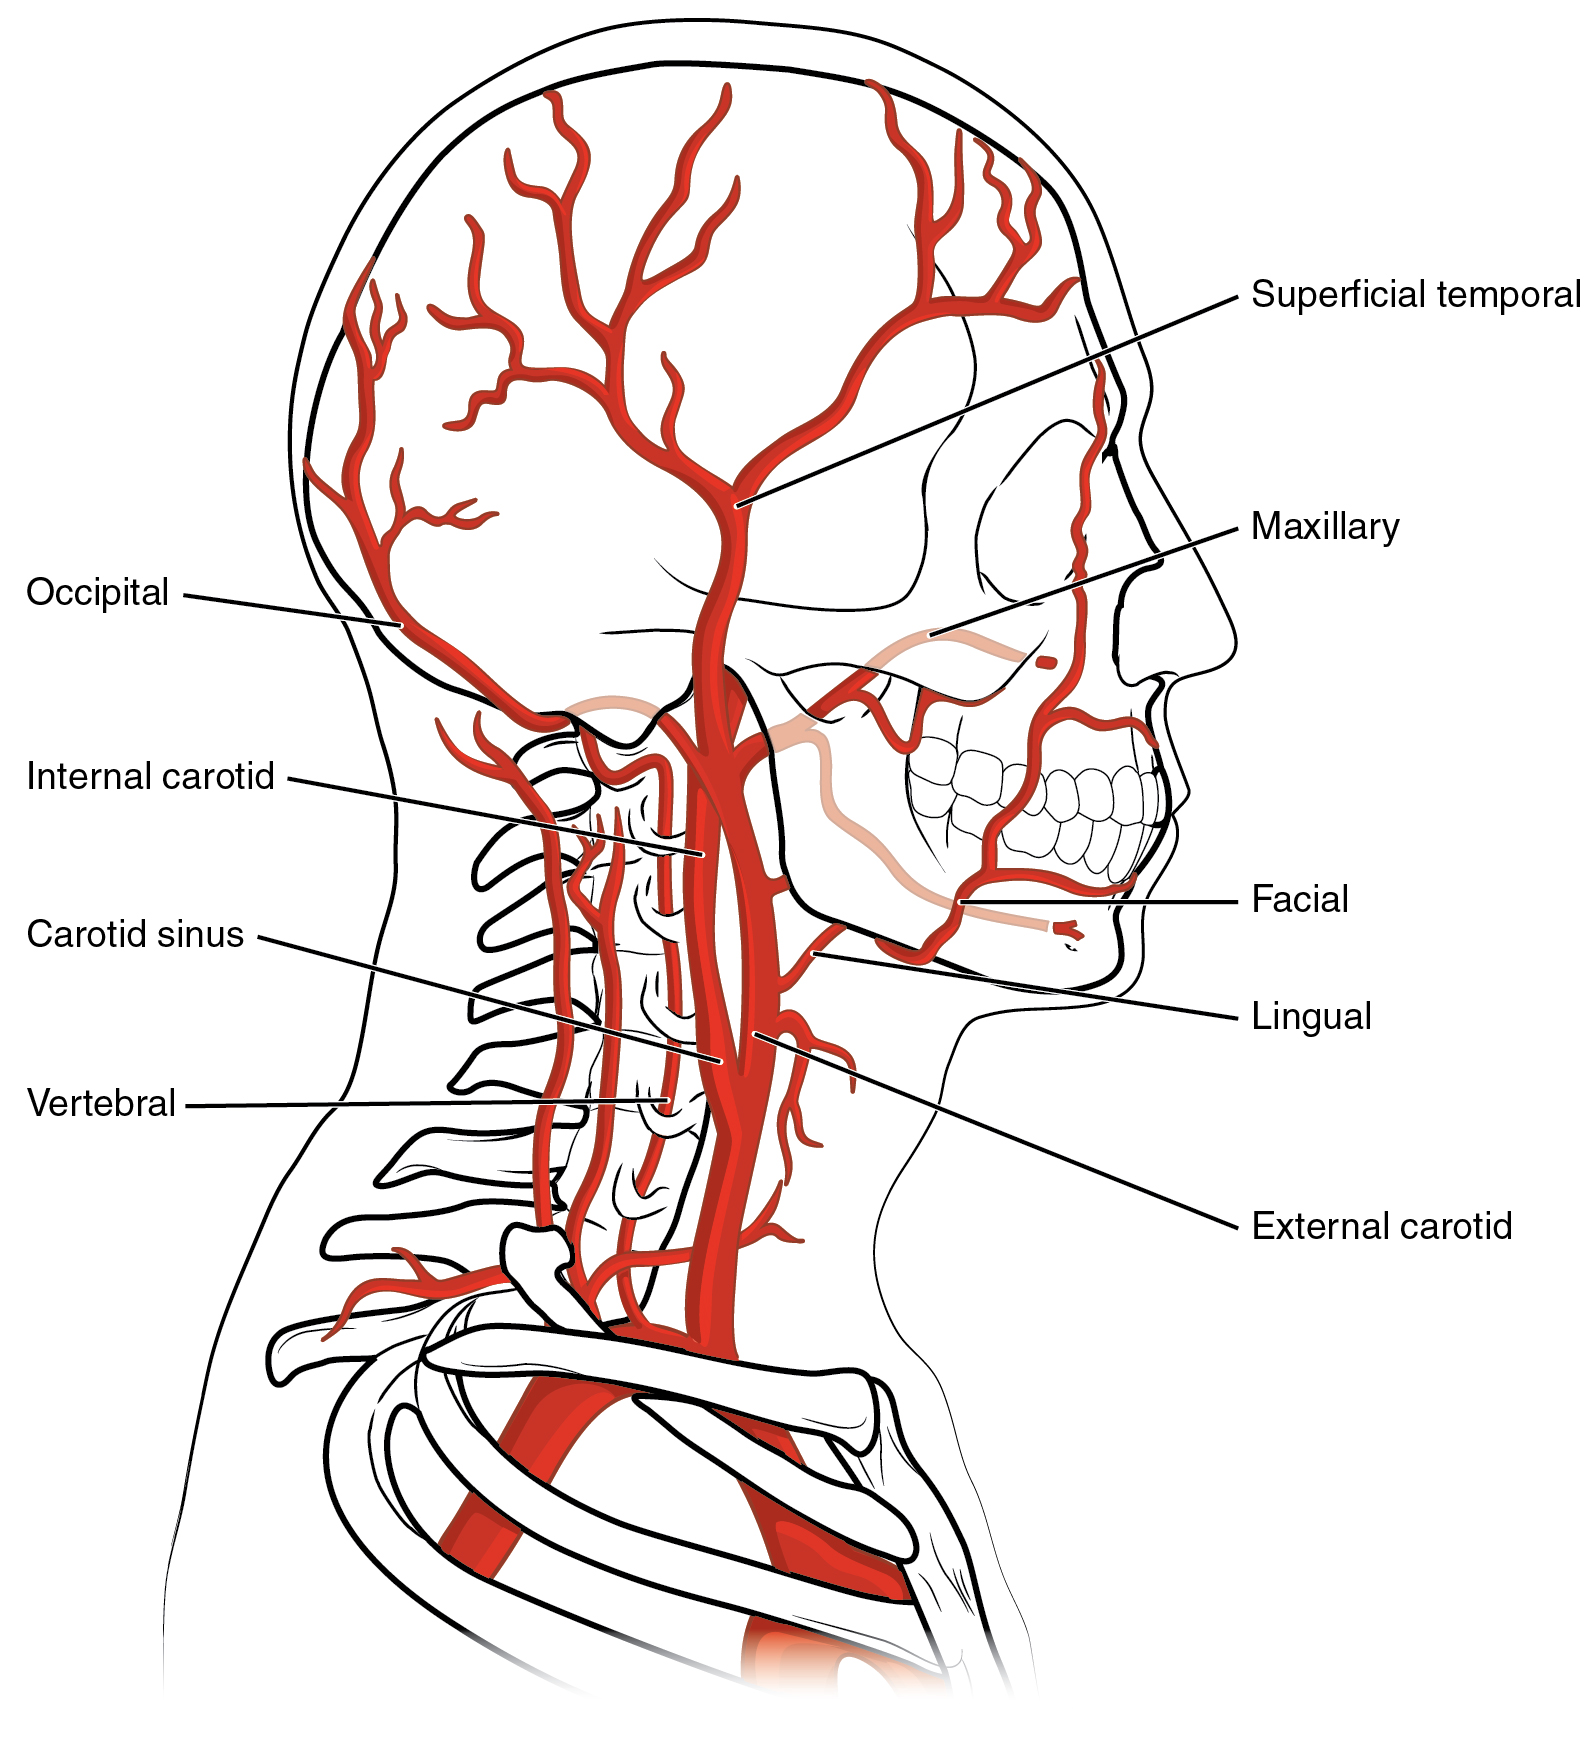 Carotid Diagram Worksheet